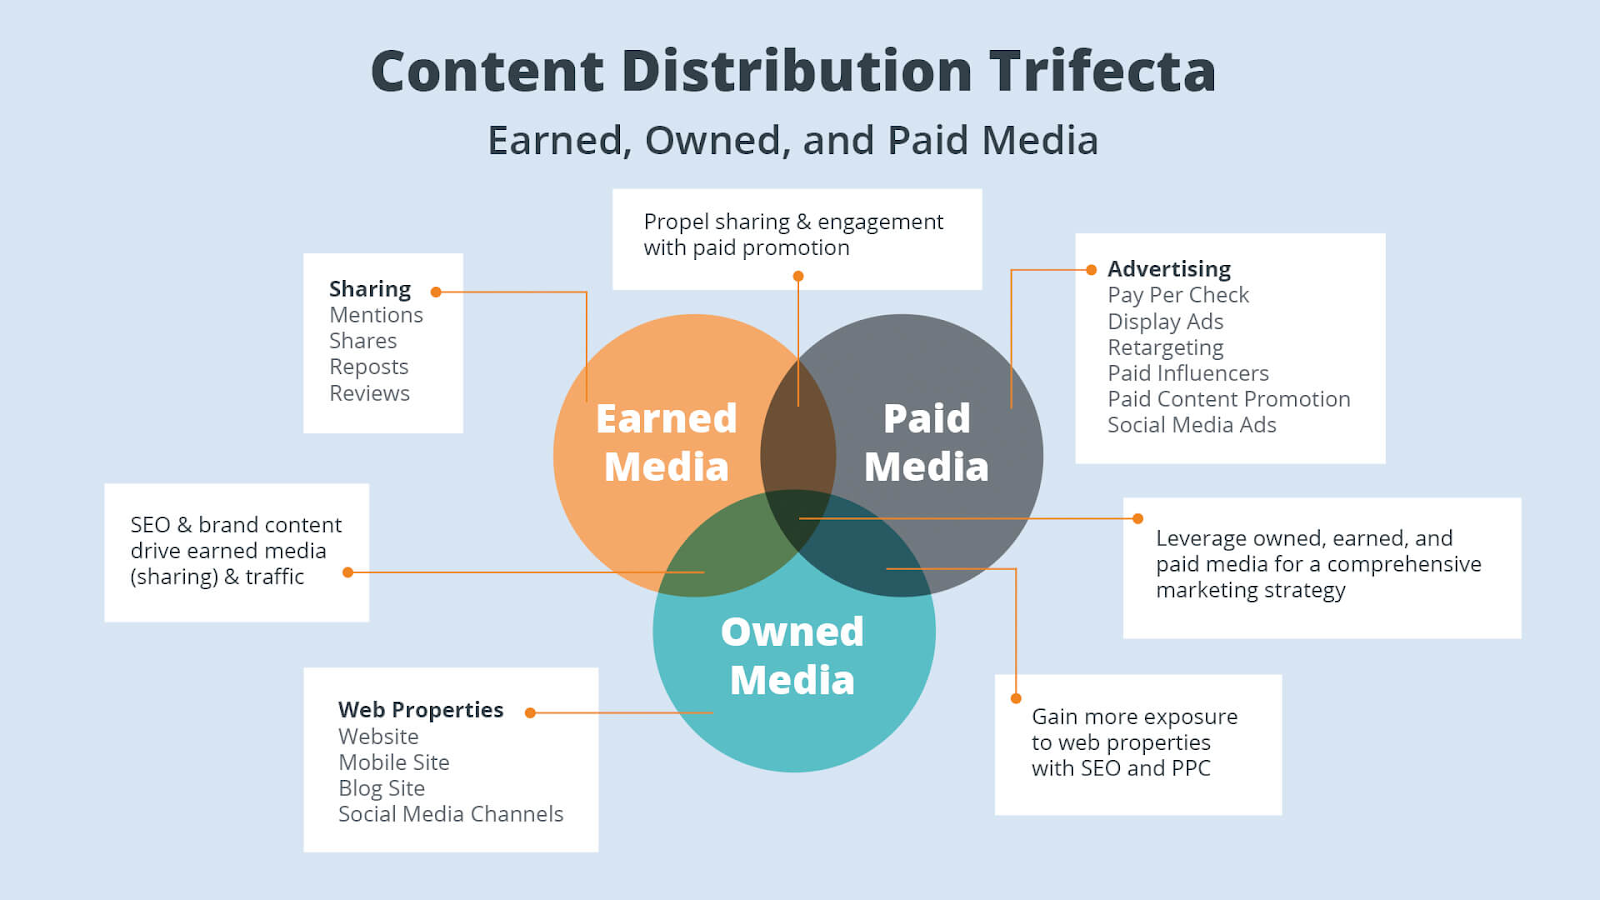 Marketeer Wiring Diagram Page 3 And Schematics Ppc Services Source Content Marketing Misconceptions Outbrain Example The Daily Egg Rh Crazyegg Com Mix Ppt